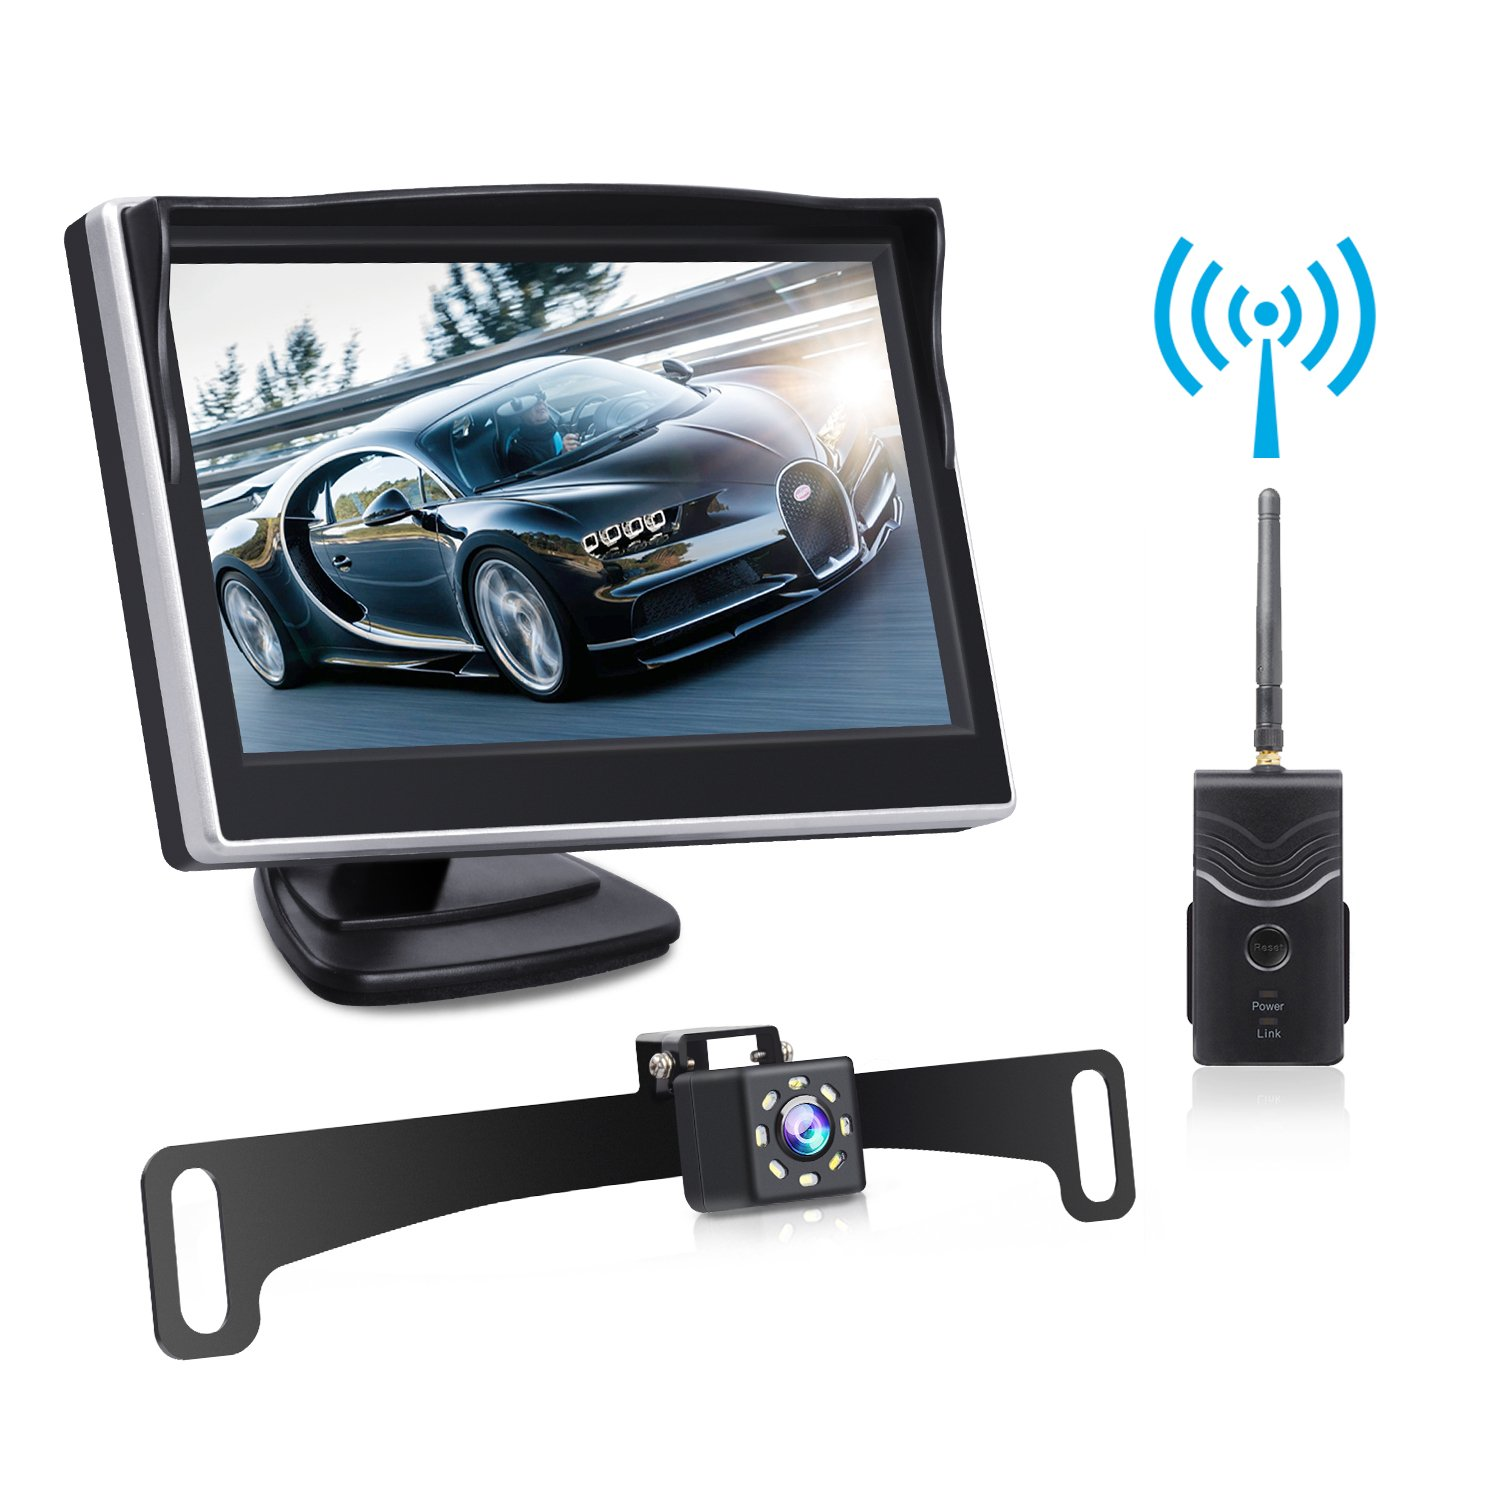 Digital Wireless Backup Camera Kit, TOGUARD 5'' LCD Backup Monitor + IP69 Waterproof 170°Wide View Angle Reverse Rear View License Plate Camera with 8 LEDs, Super Night Vision for Cars/Trucks/Pickup